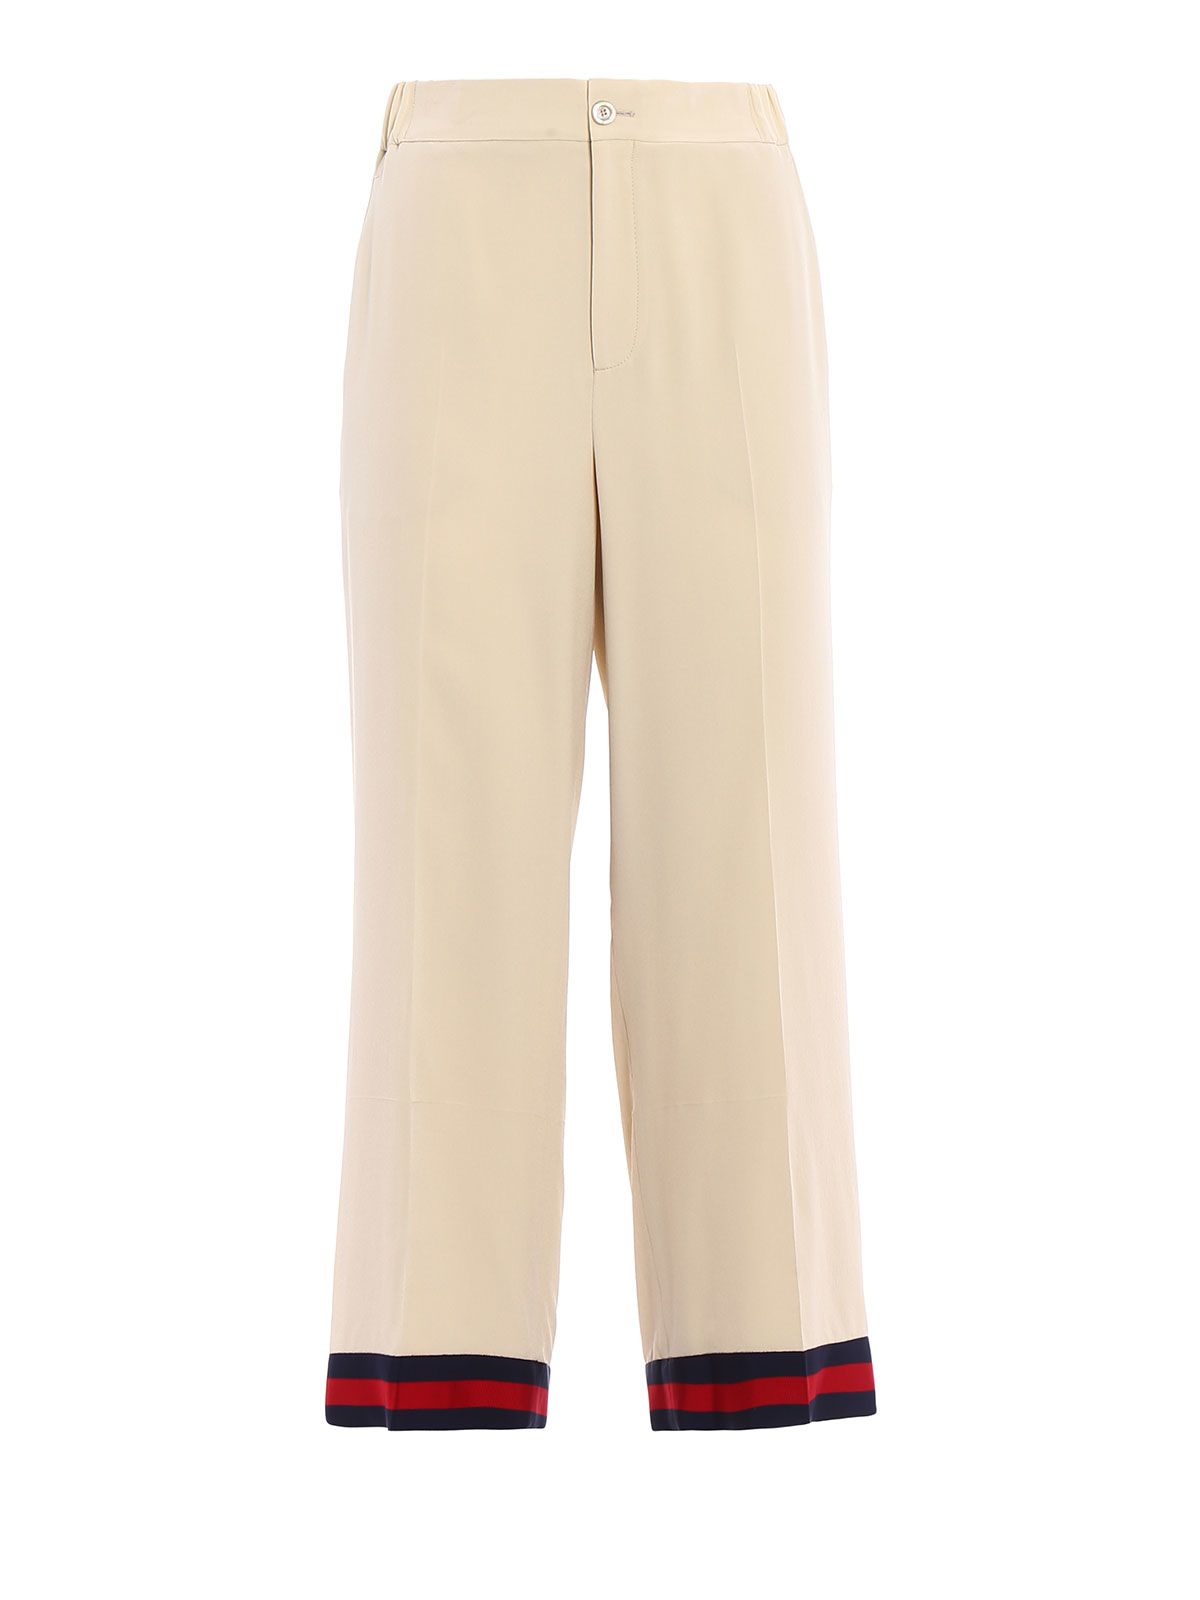 Gucci Silk Crepe De Chine Pants